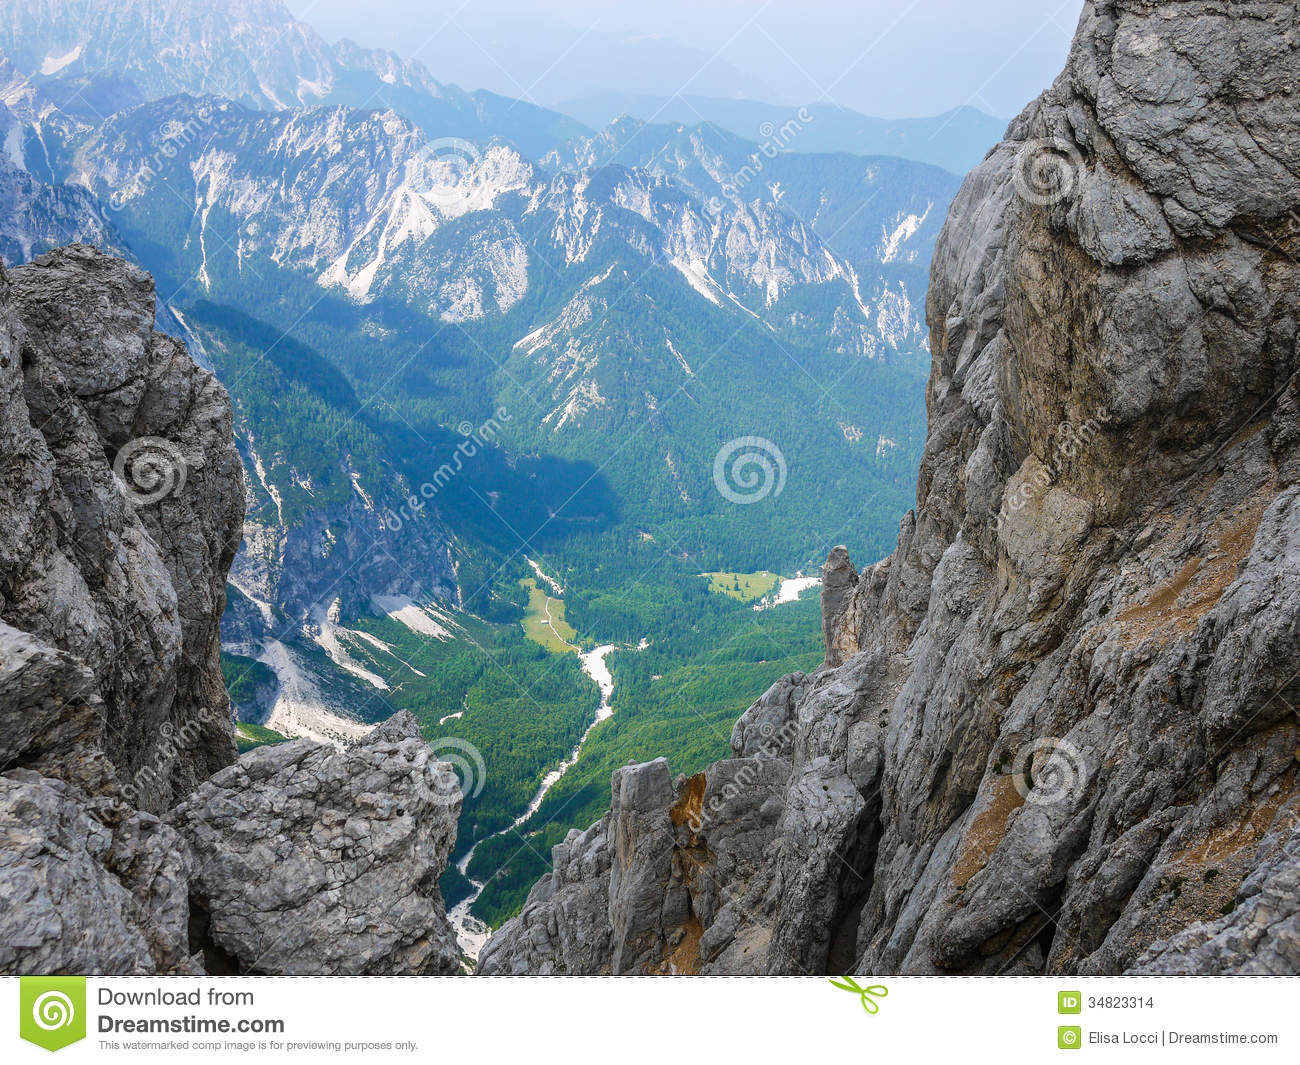 View of Vrata Valley in Triglav National Park, Slovenia.